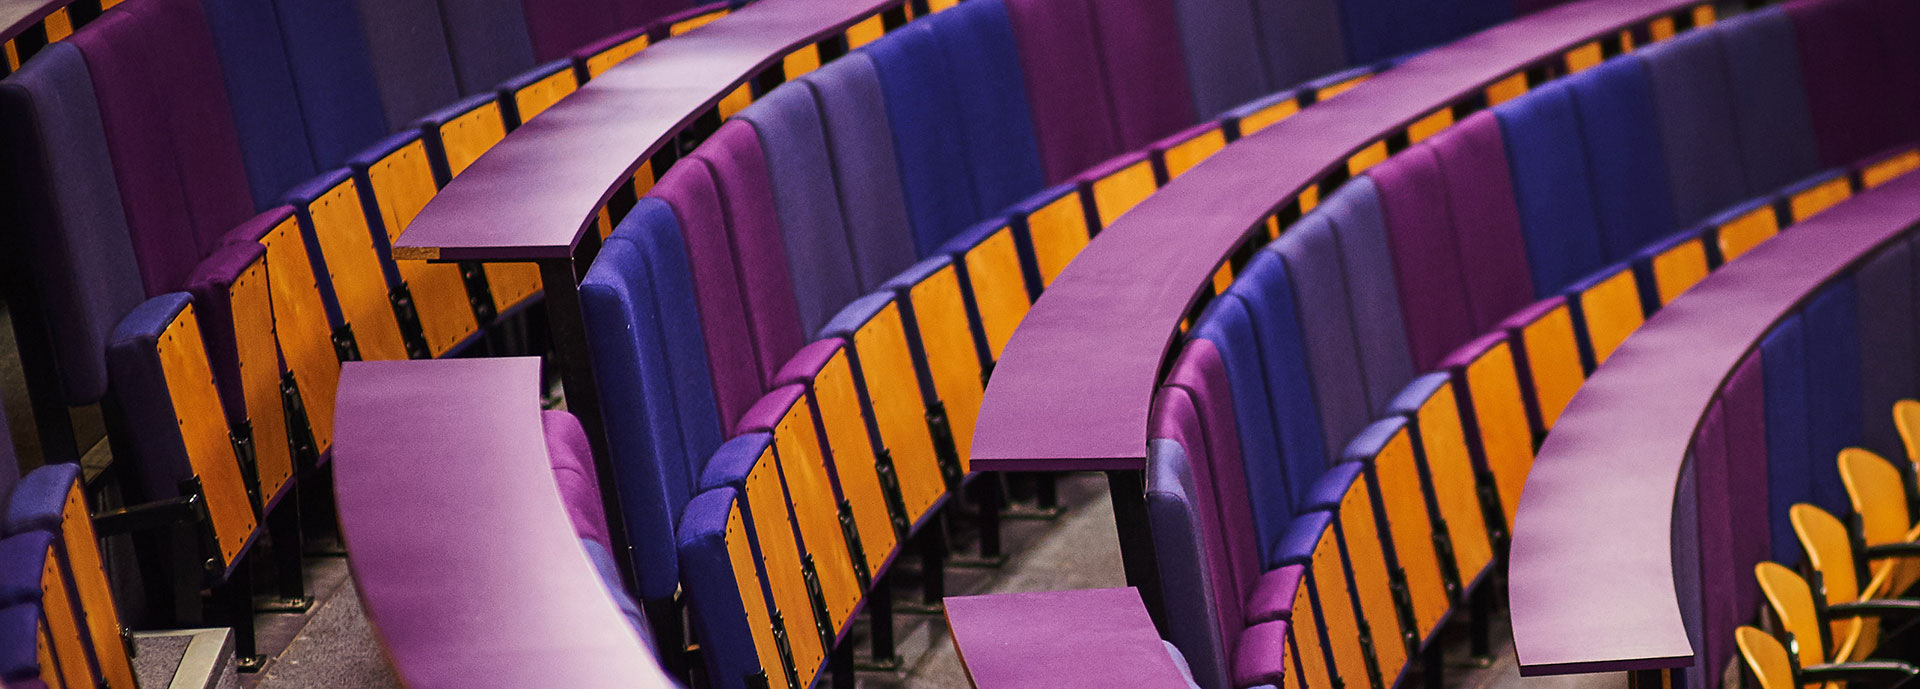 Logie Lecture Theatre at the University of Stirling